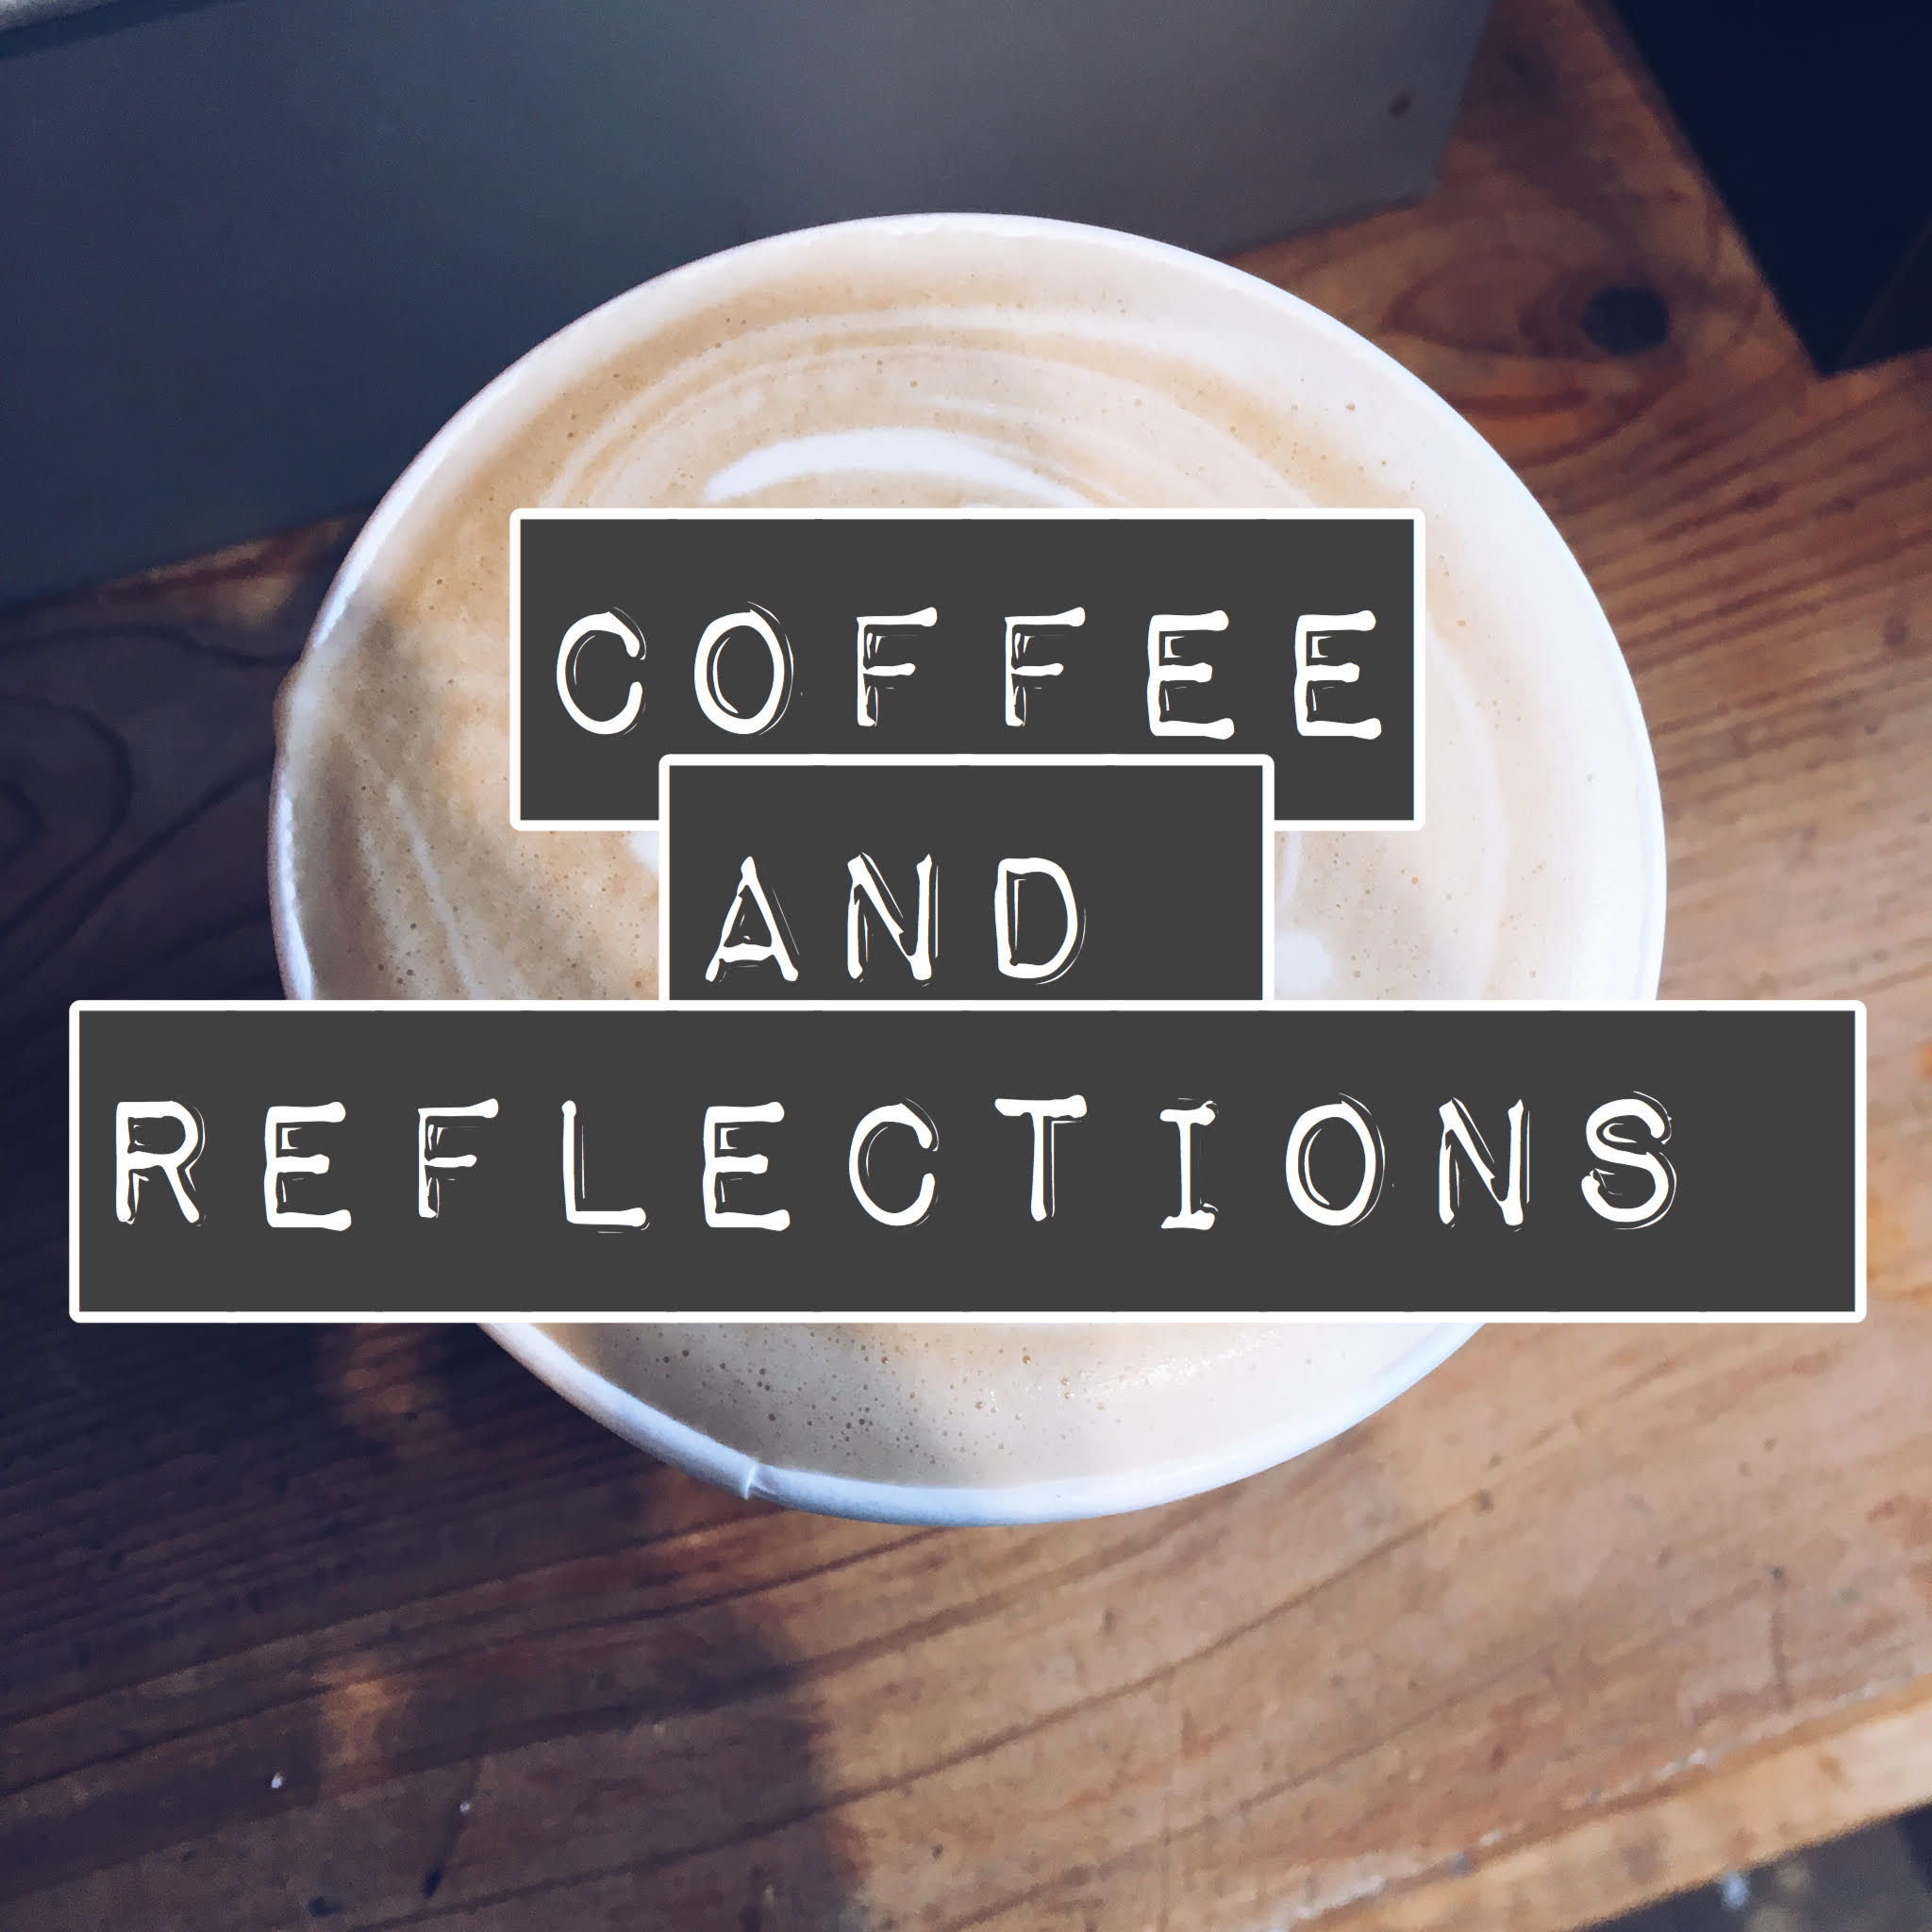 Coffee and Reflections